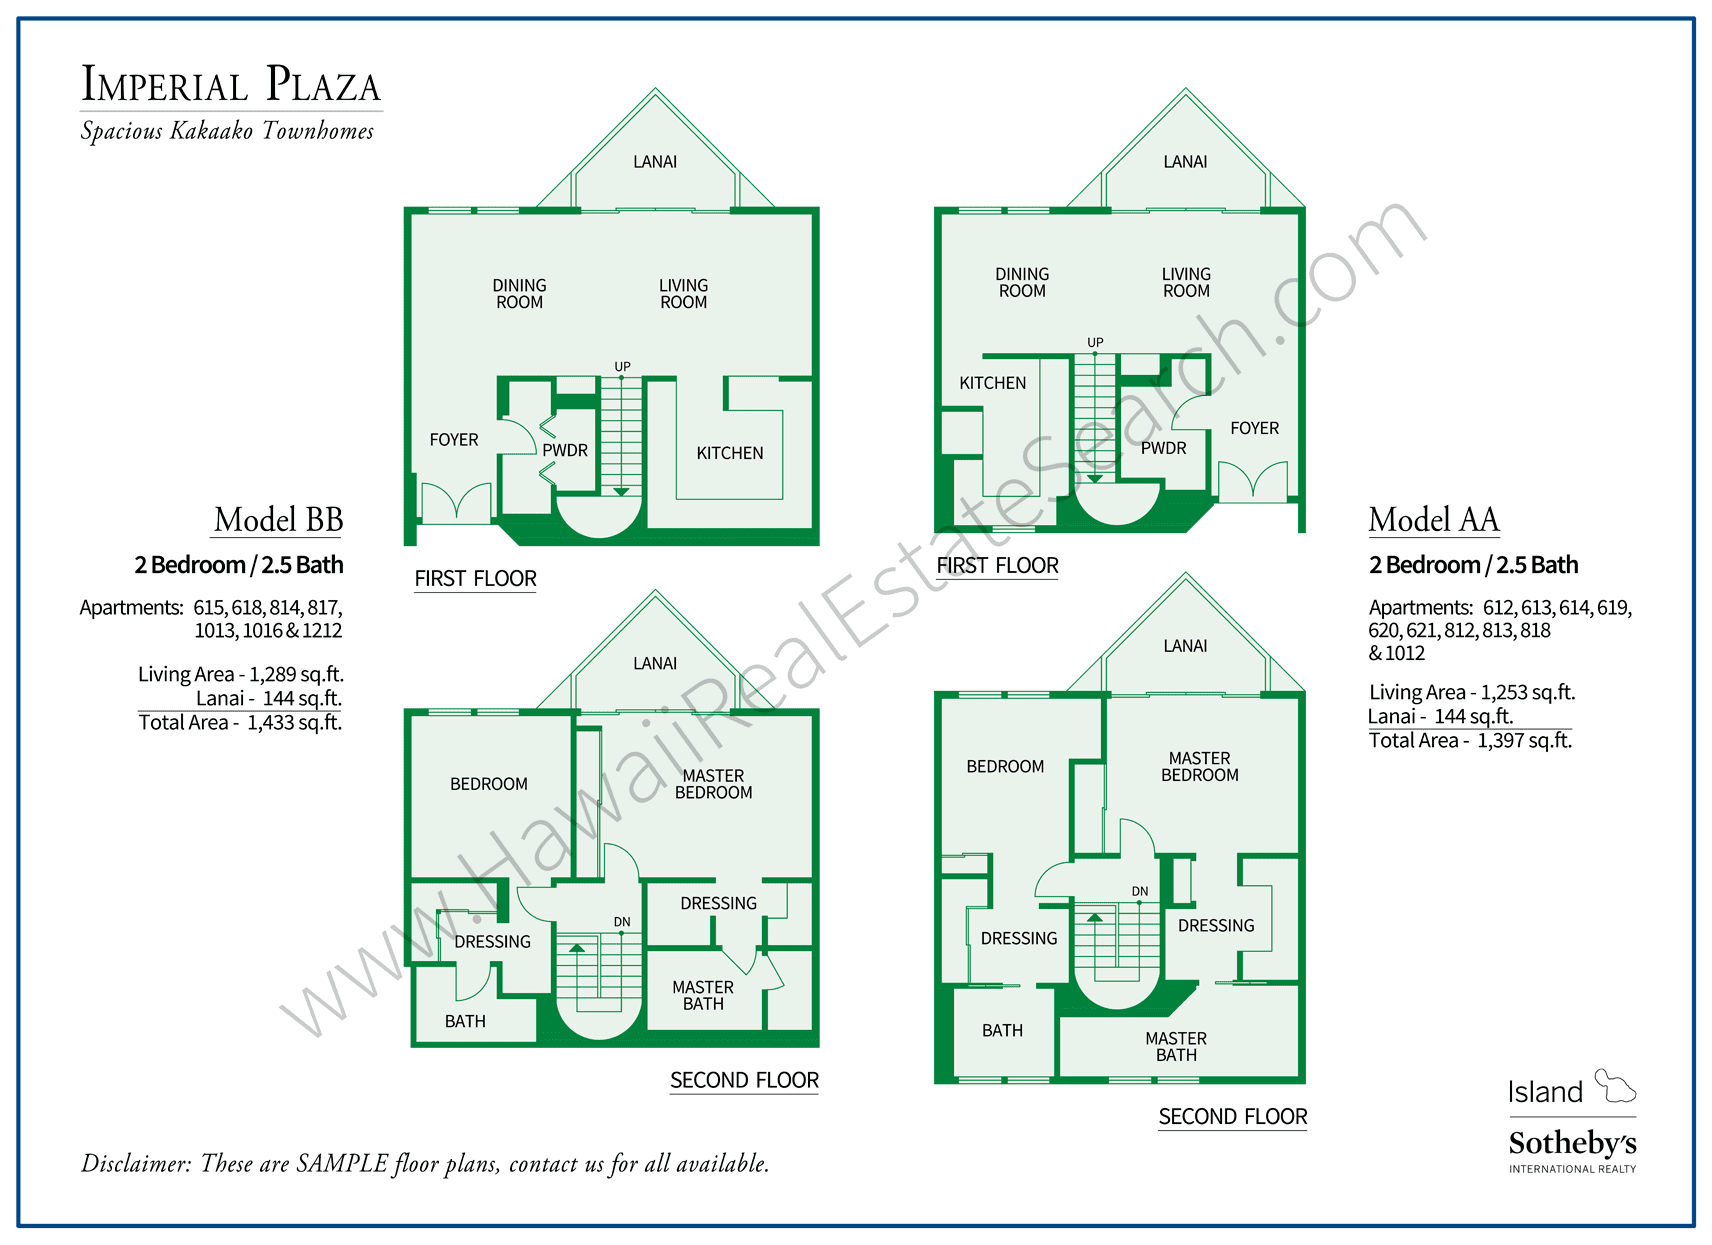 Imperial Plaza Floor Plan AA and BB